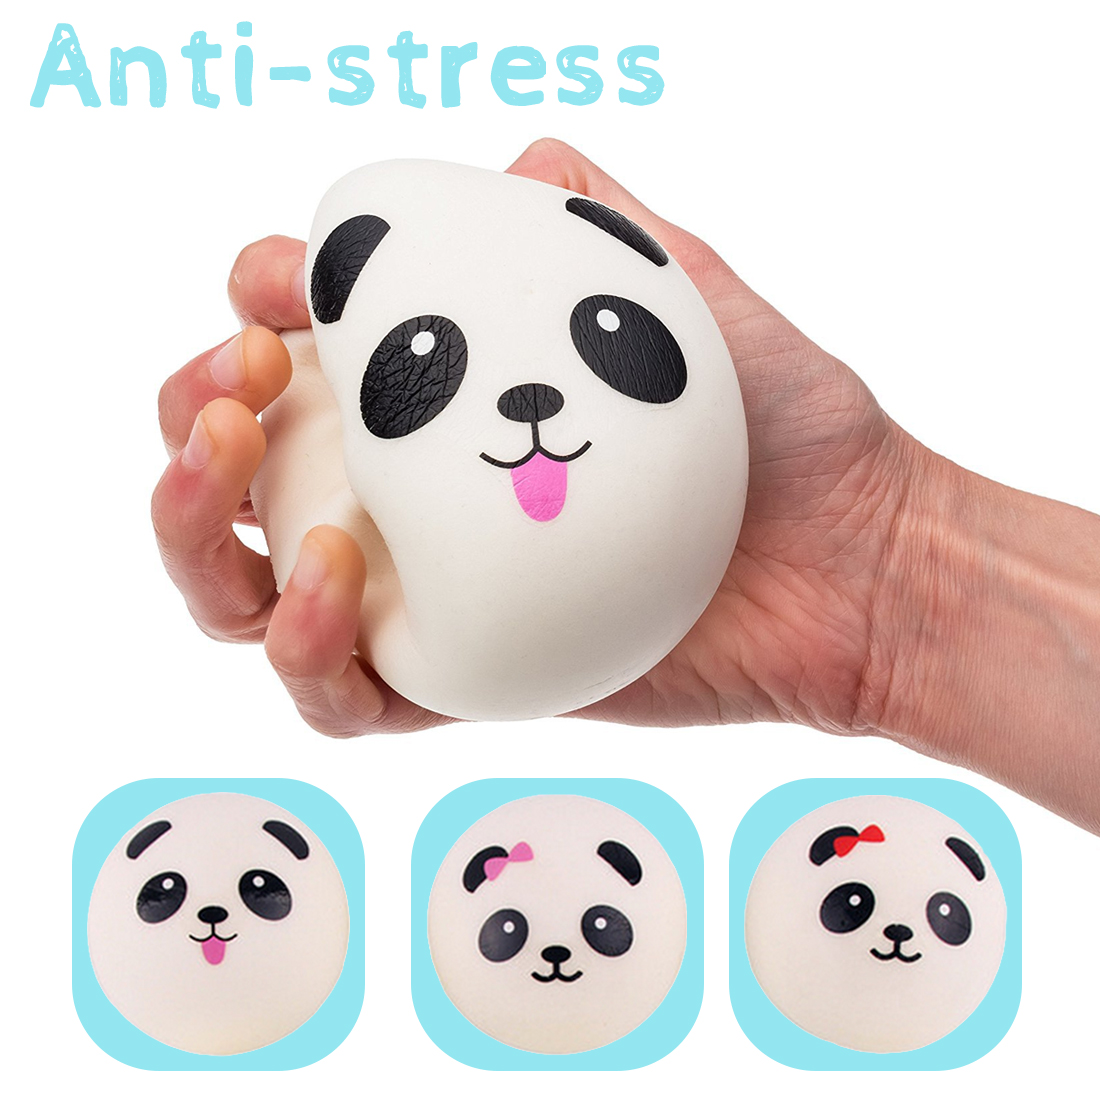 10/7/4cm Squishy Toy Soft Slow Rising Jumbo Panda Face Bread Squeeze Kid Fun Hobby Stress Reliever Decor Phone Strap Gift J11